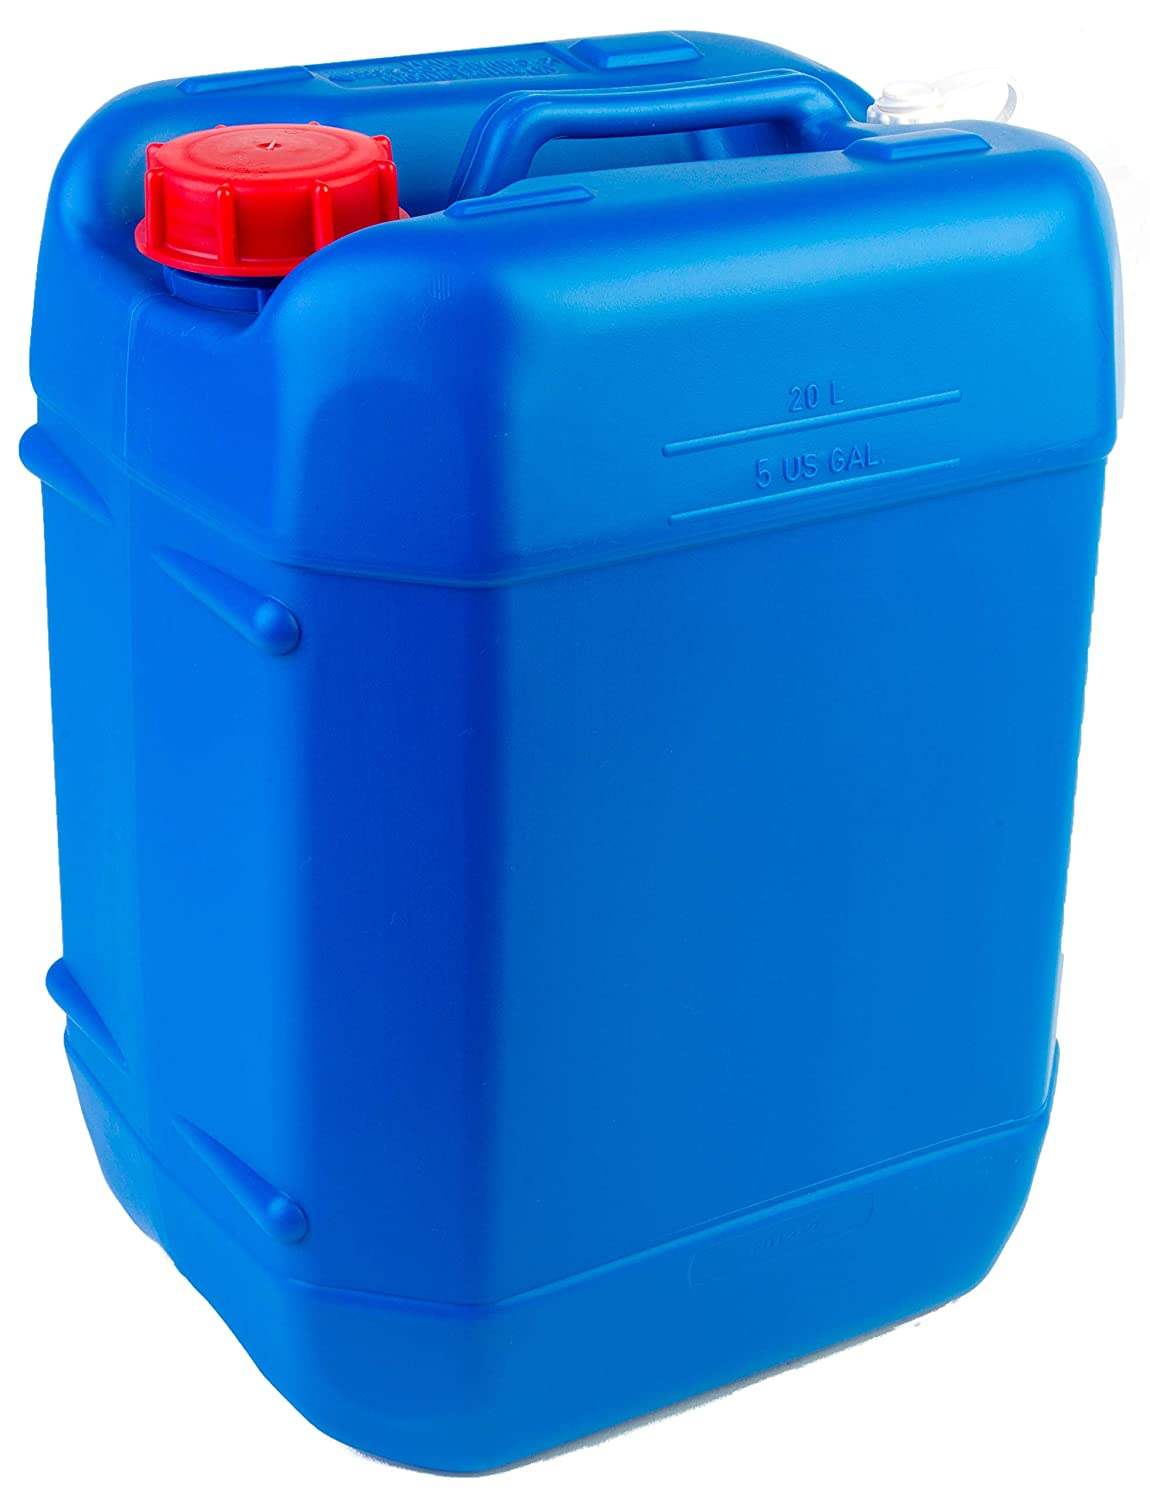 Hudson Exchange - 3012+1120 5 Gallon (20 Liter) Handled Container with Cap, HDPE, Blue